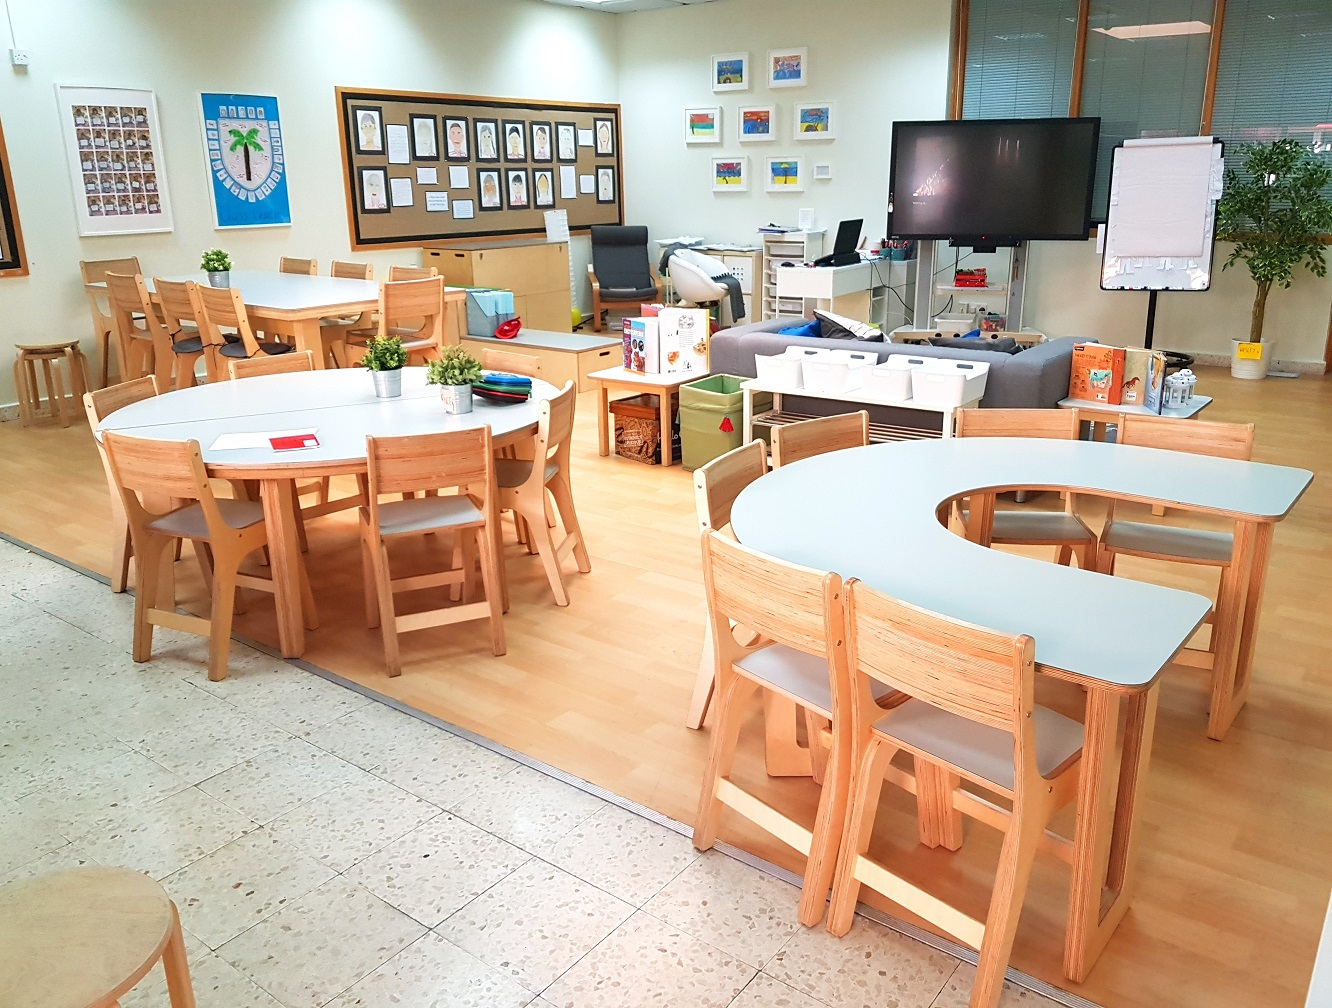 Dubai English Speaking School Classroom